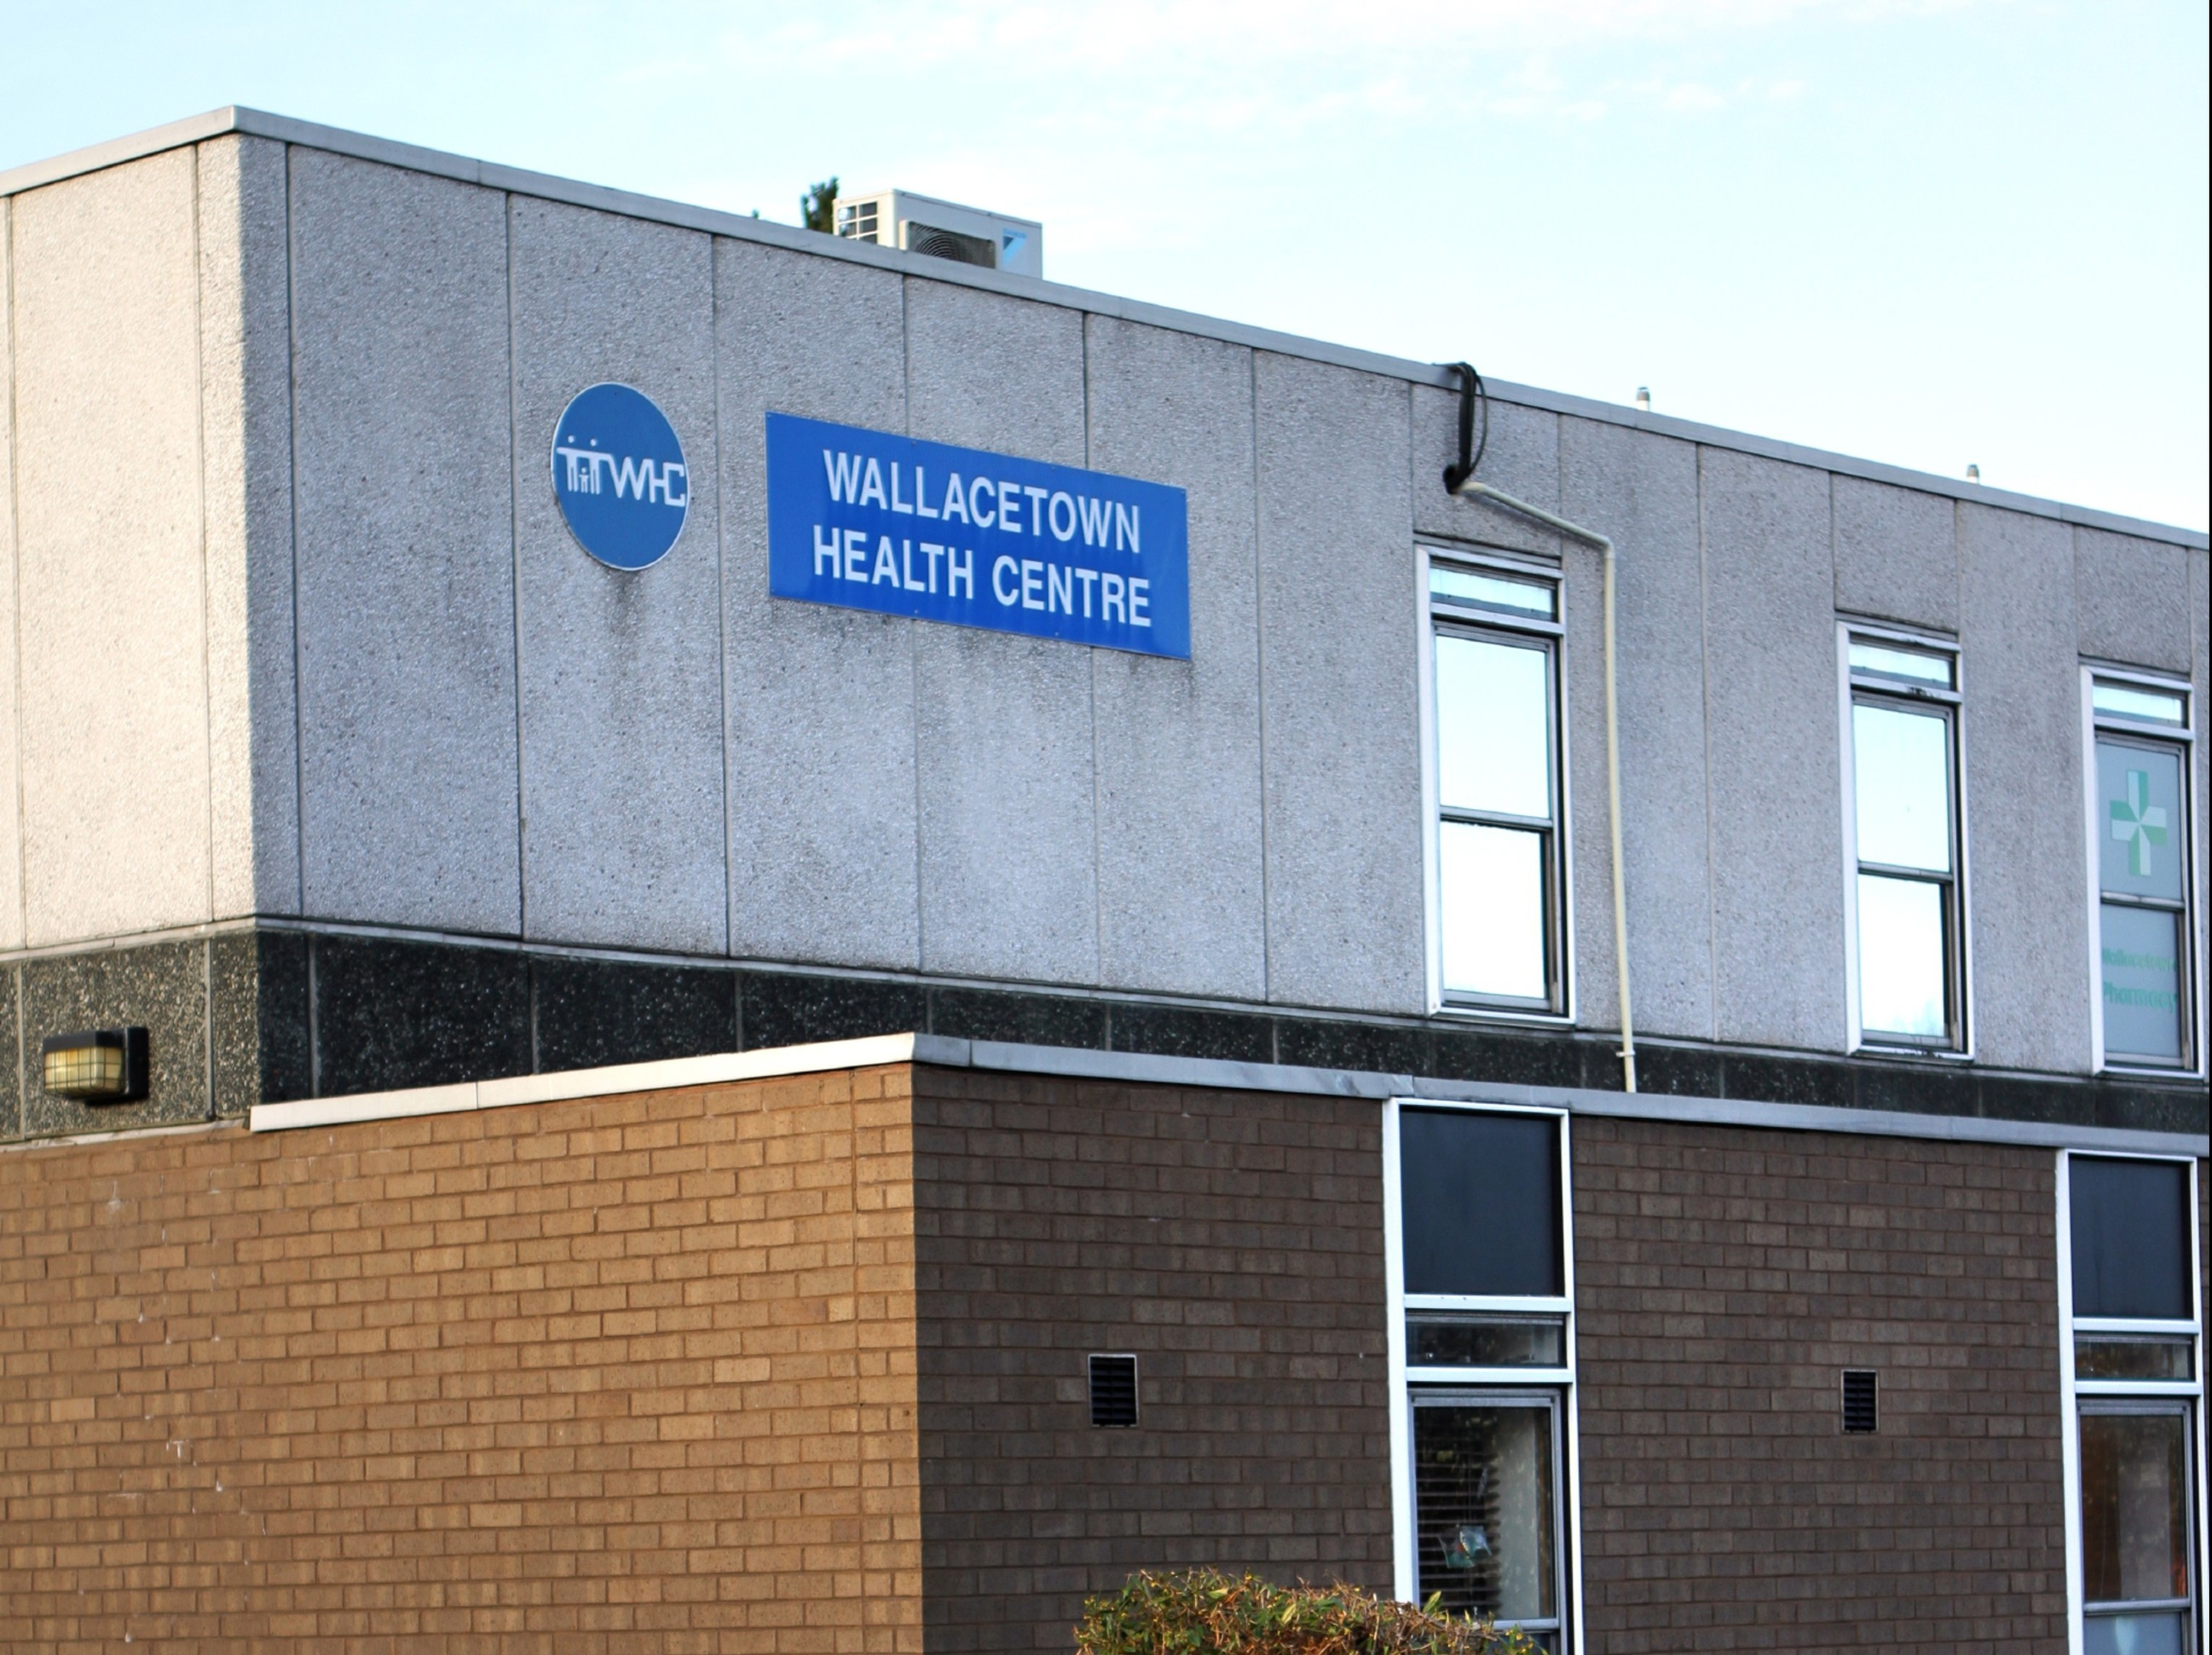 Wallacetown Health Centre.